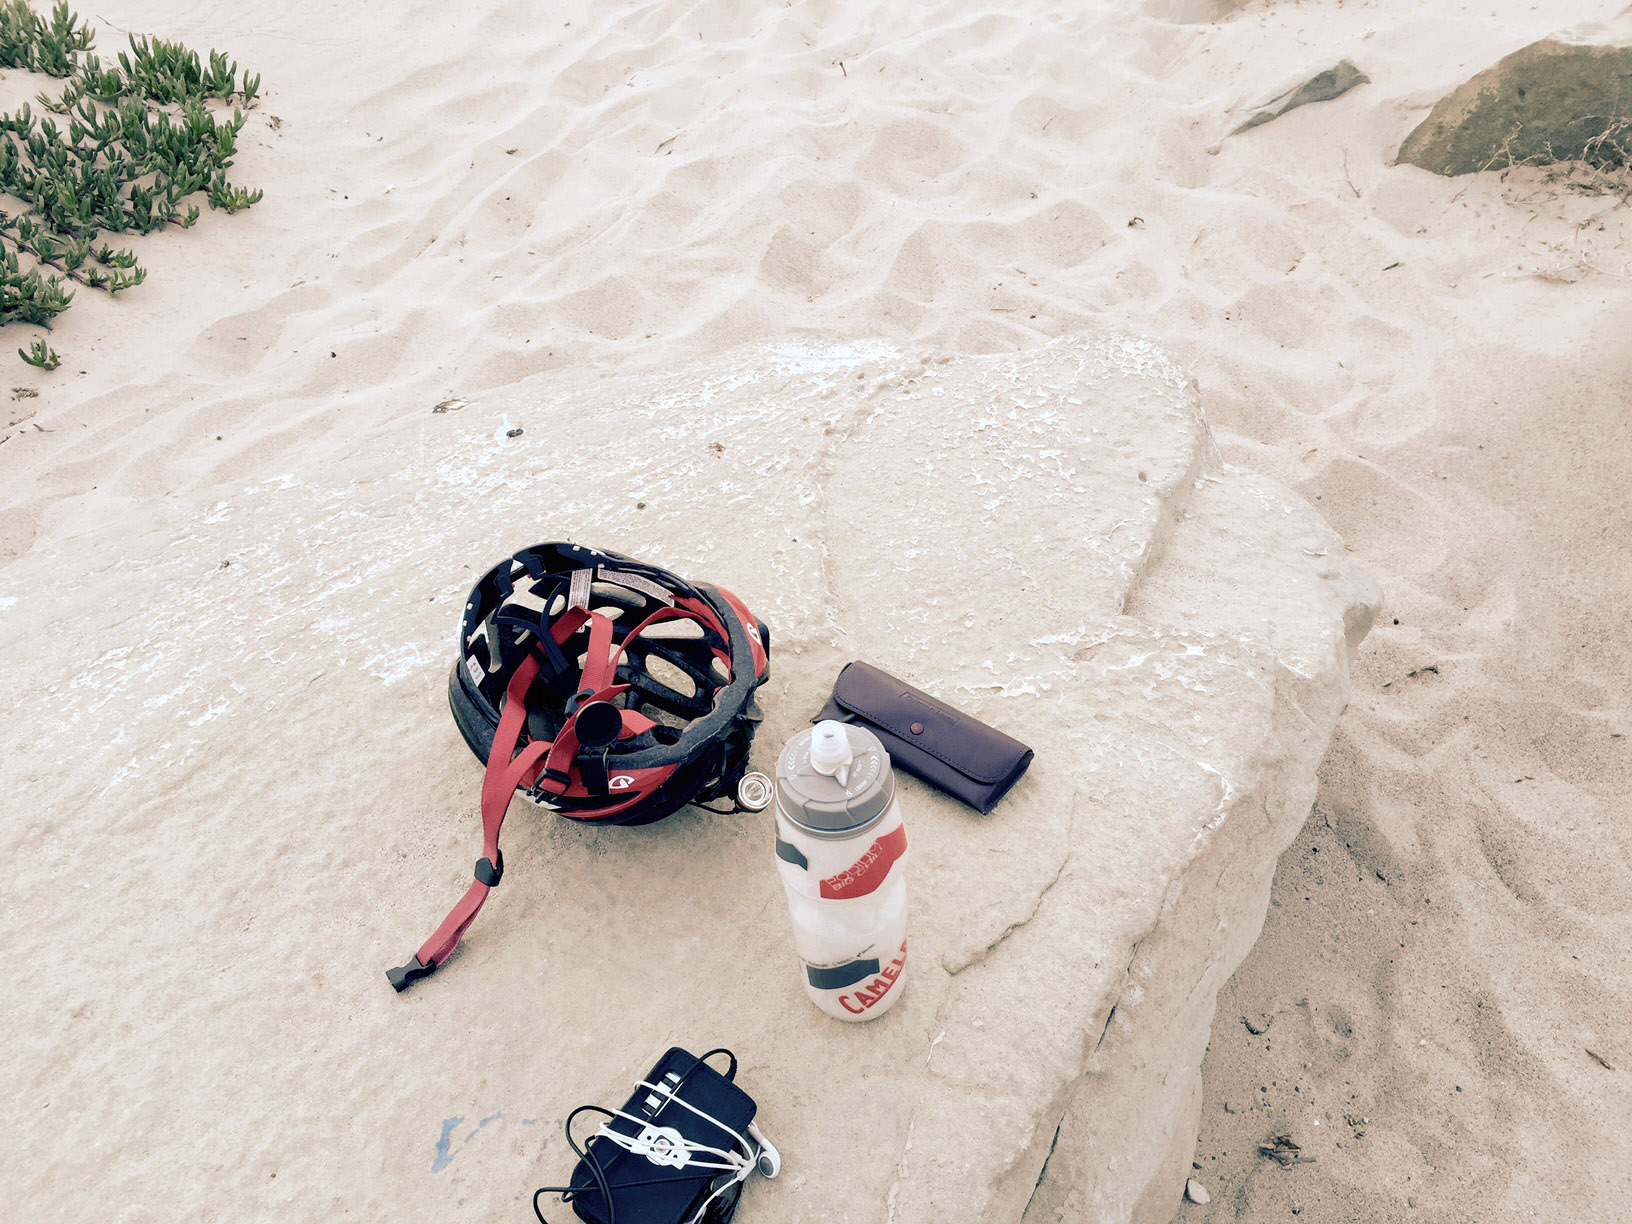 Laurie's bike helmut and podcast gear on a large sandy colored flat boulder on the beach